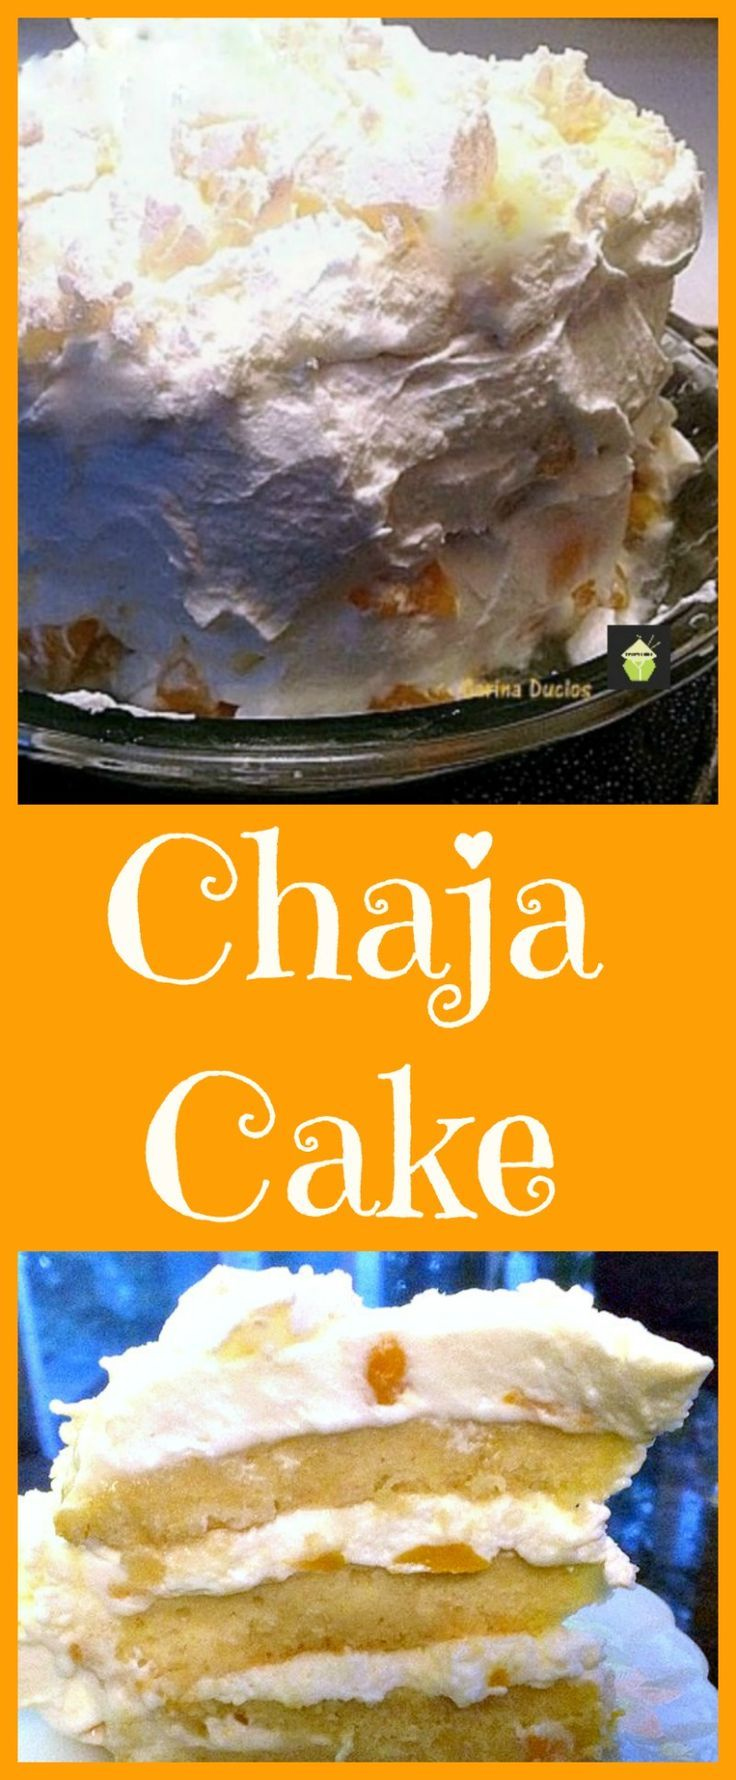 Celebration Chaja Cake - A jaw dropping cake of amazingness all the way from Argentina!